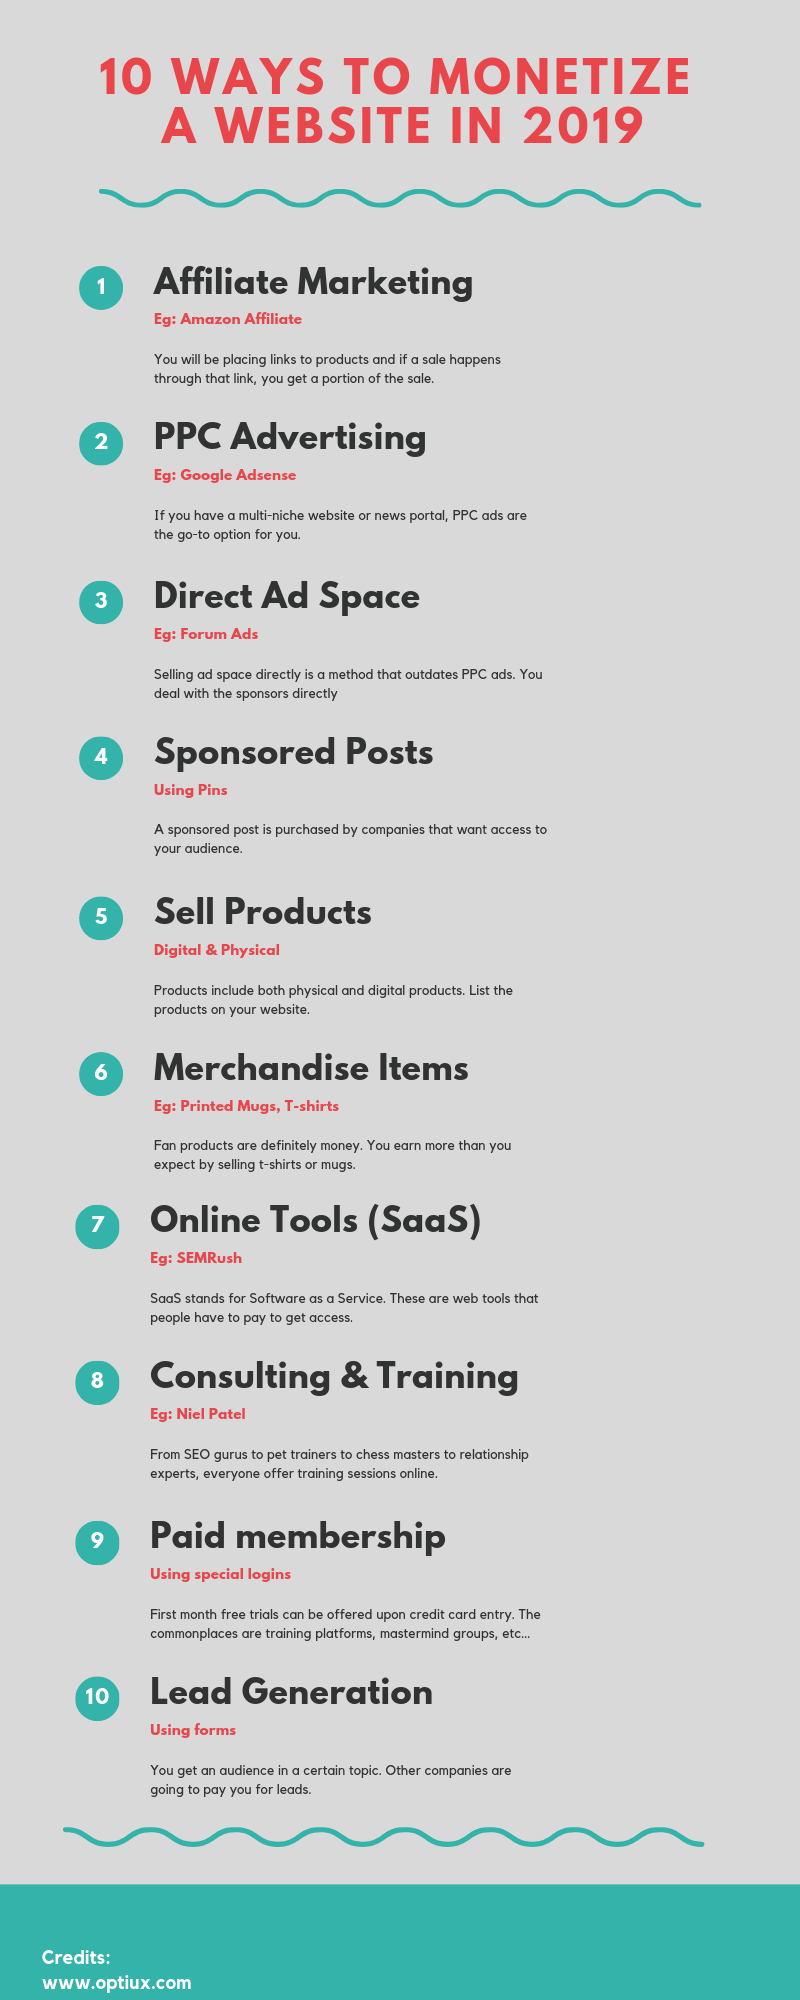 How To Monetize A Website Infographic